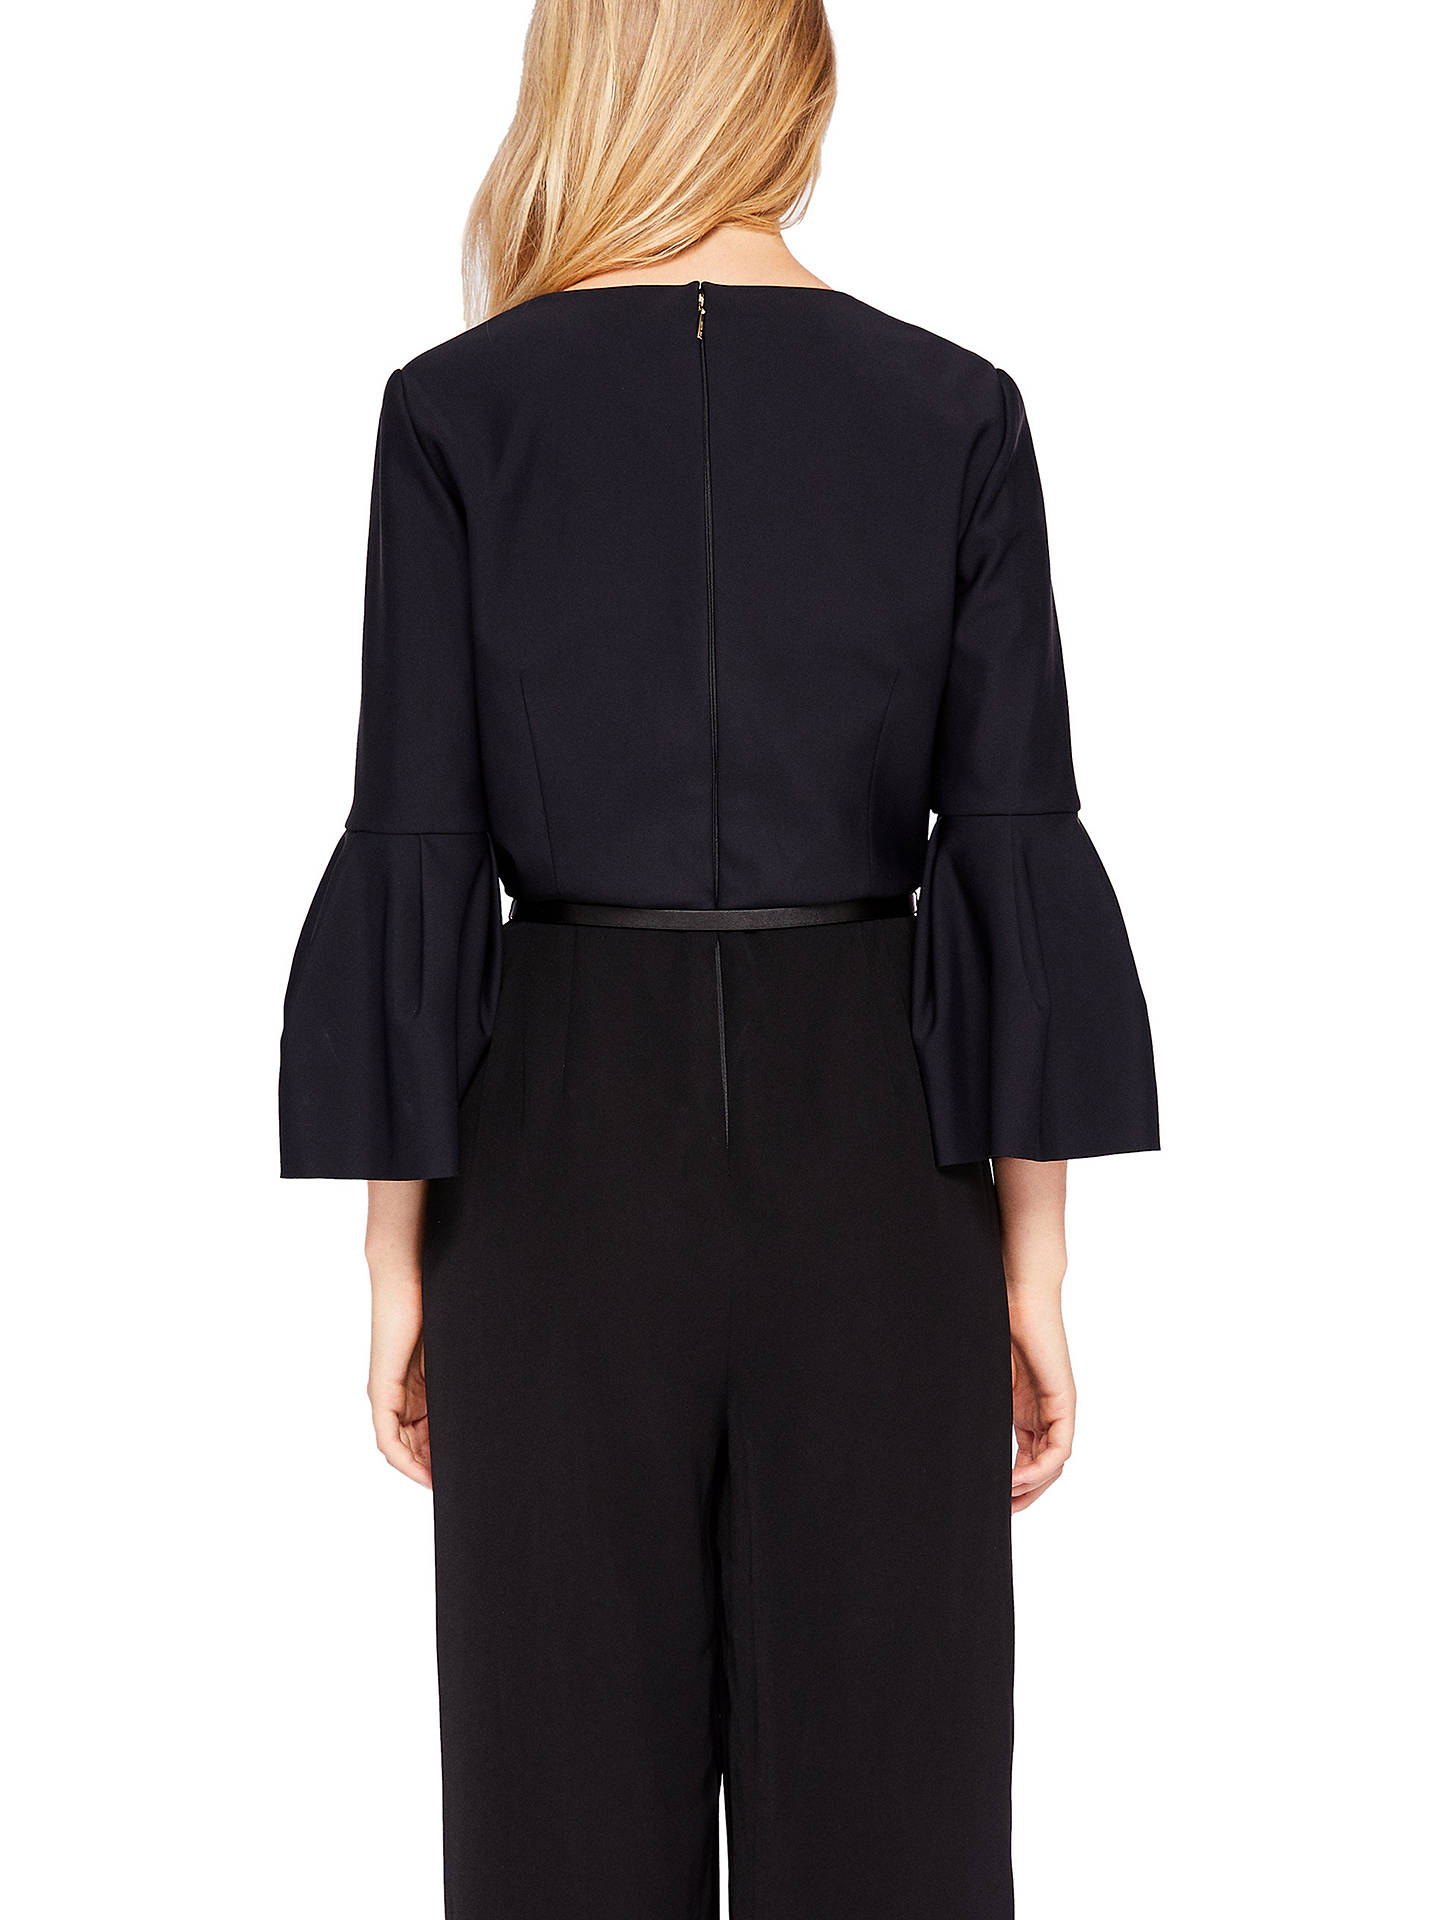 37aee0f4100 ... Buy Ted Baker Theah Full Sleeve Jumpsuit